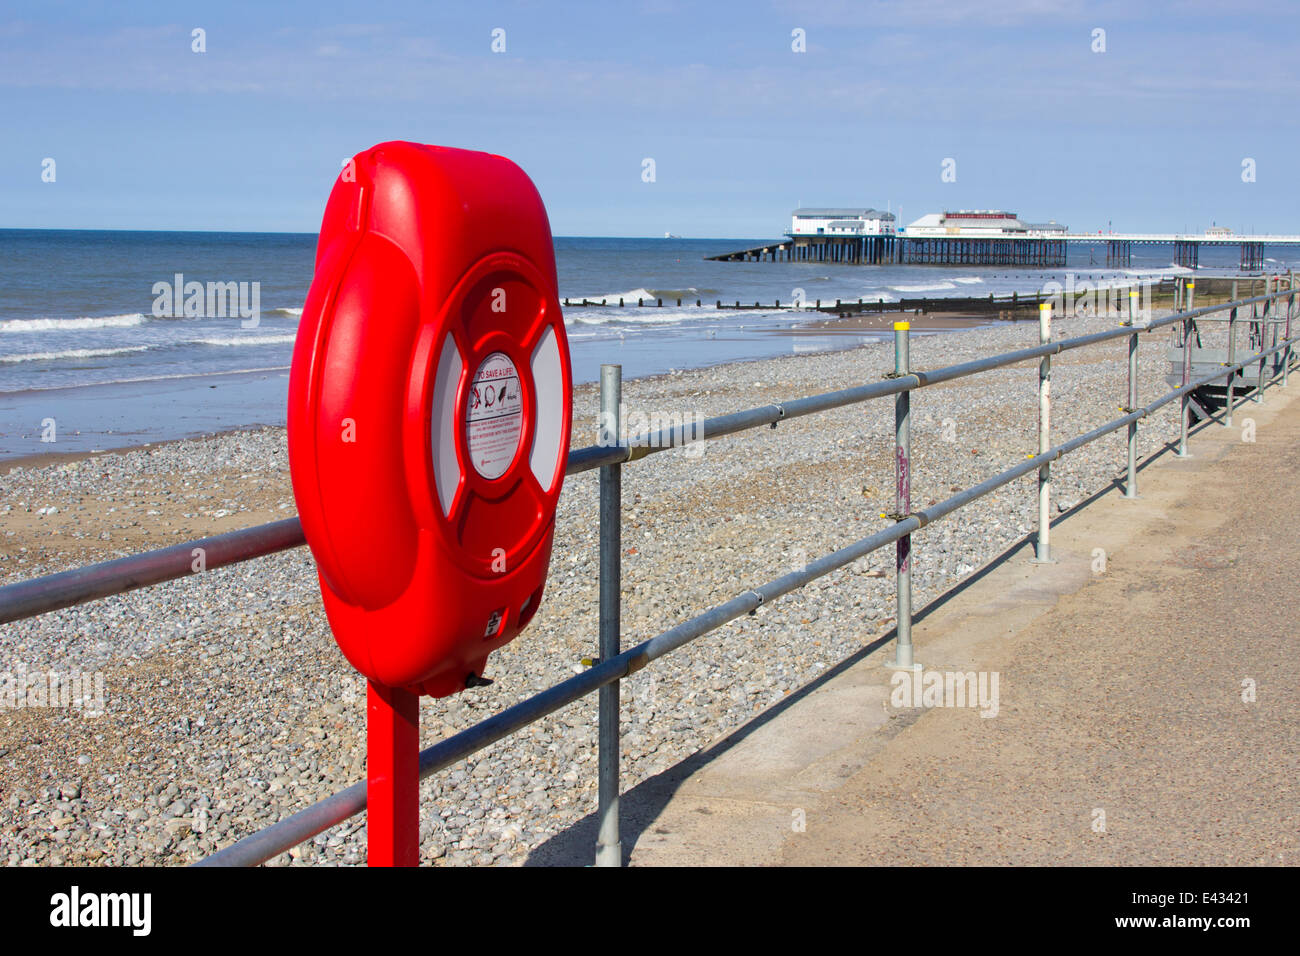 Lifebelt on the seafront at Cromer, Norfolk. Pier and lifeboat station in background. - Stock Image